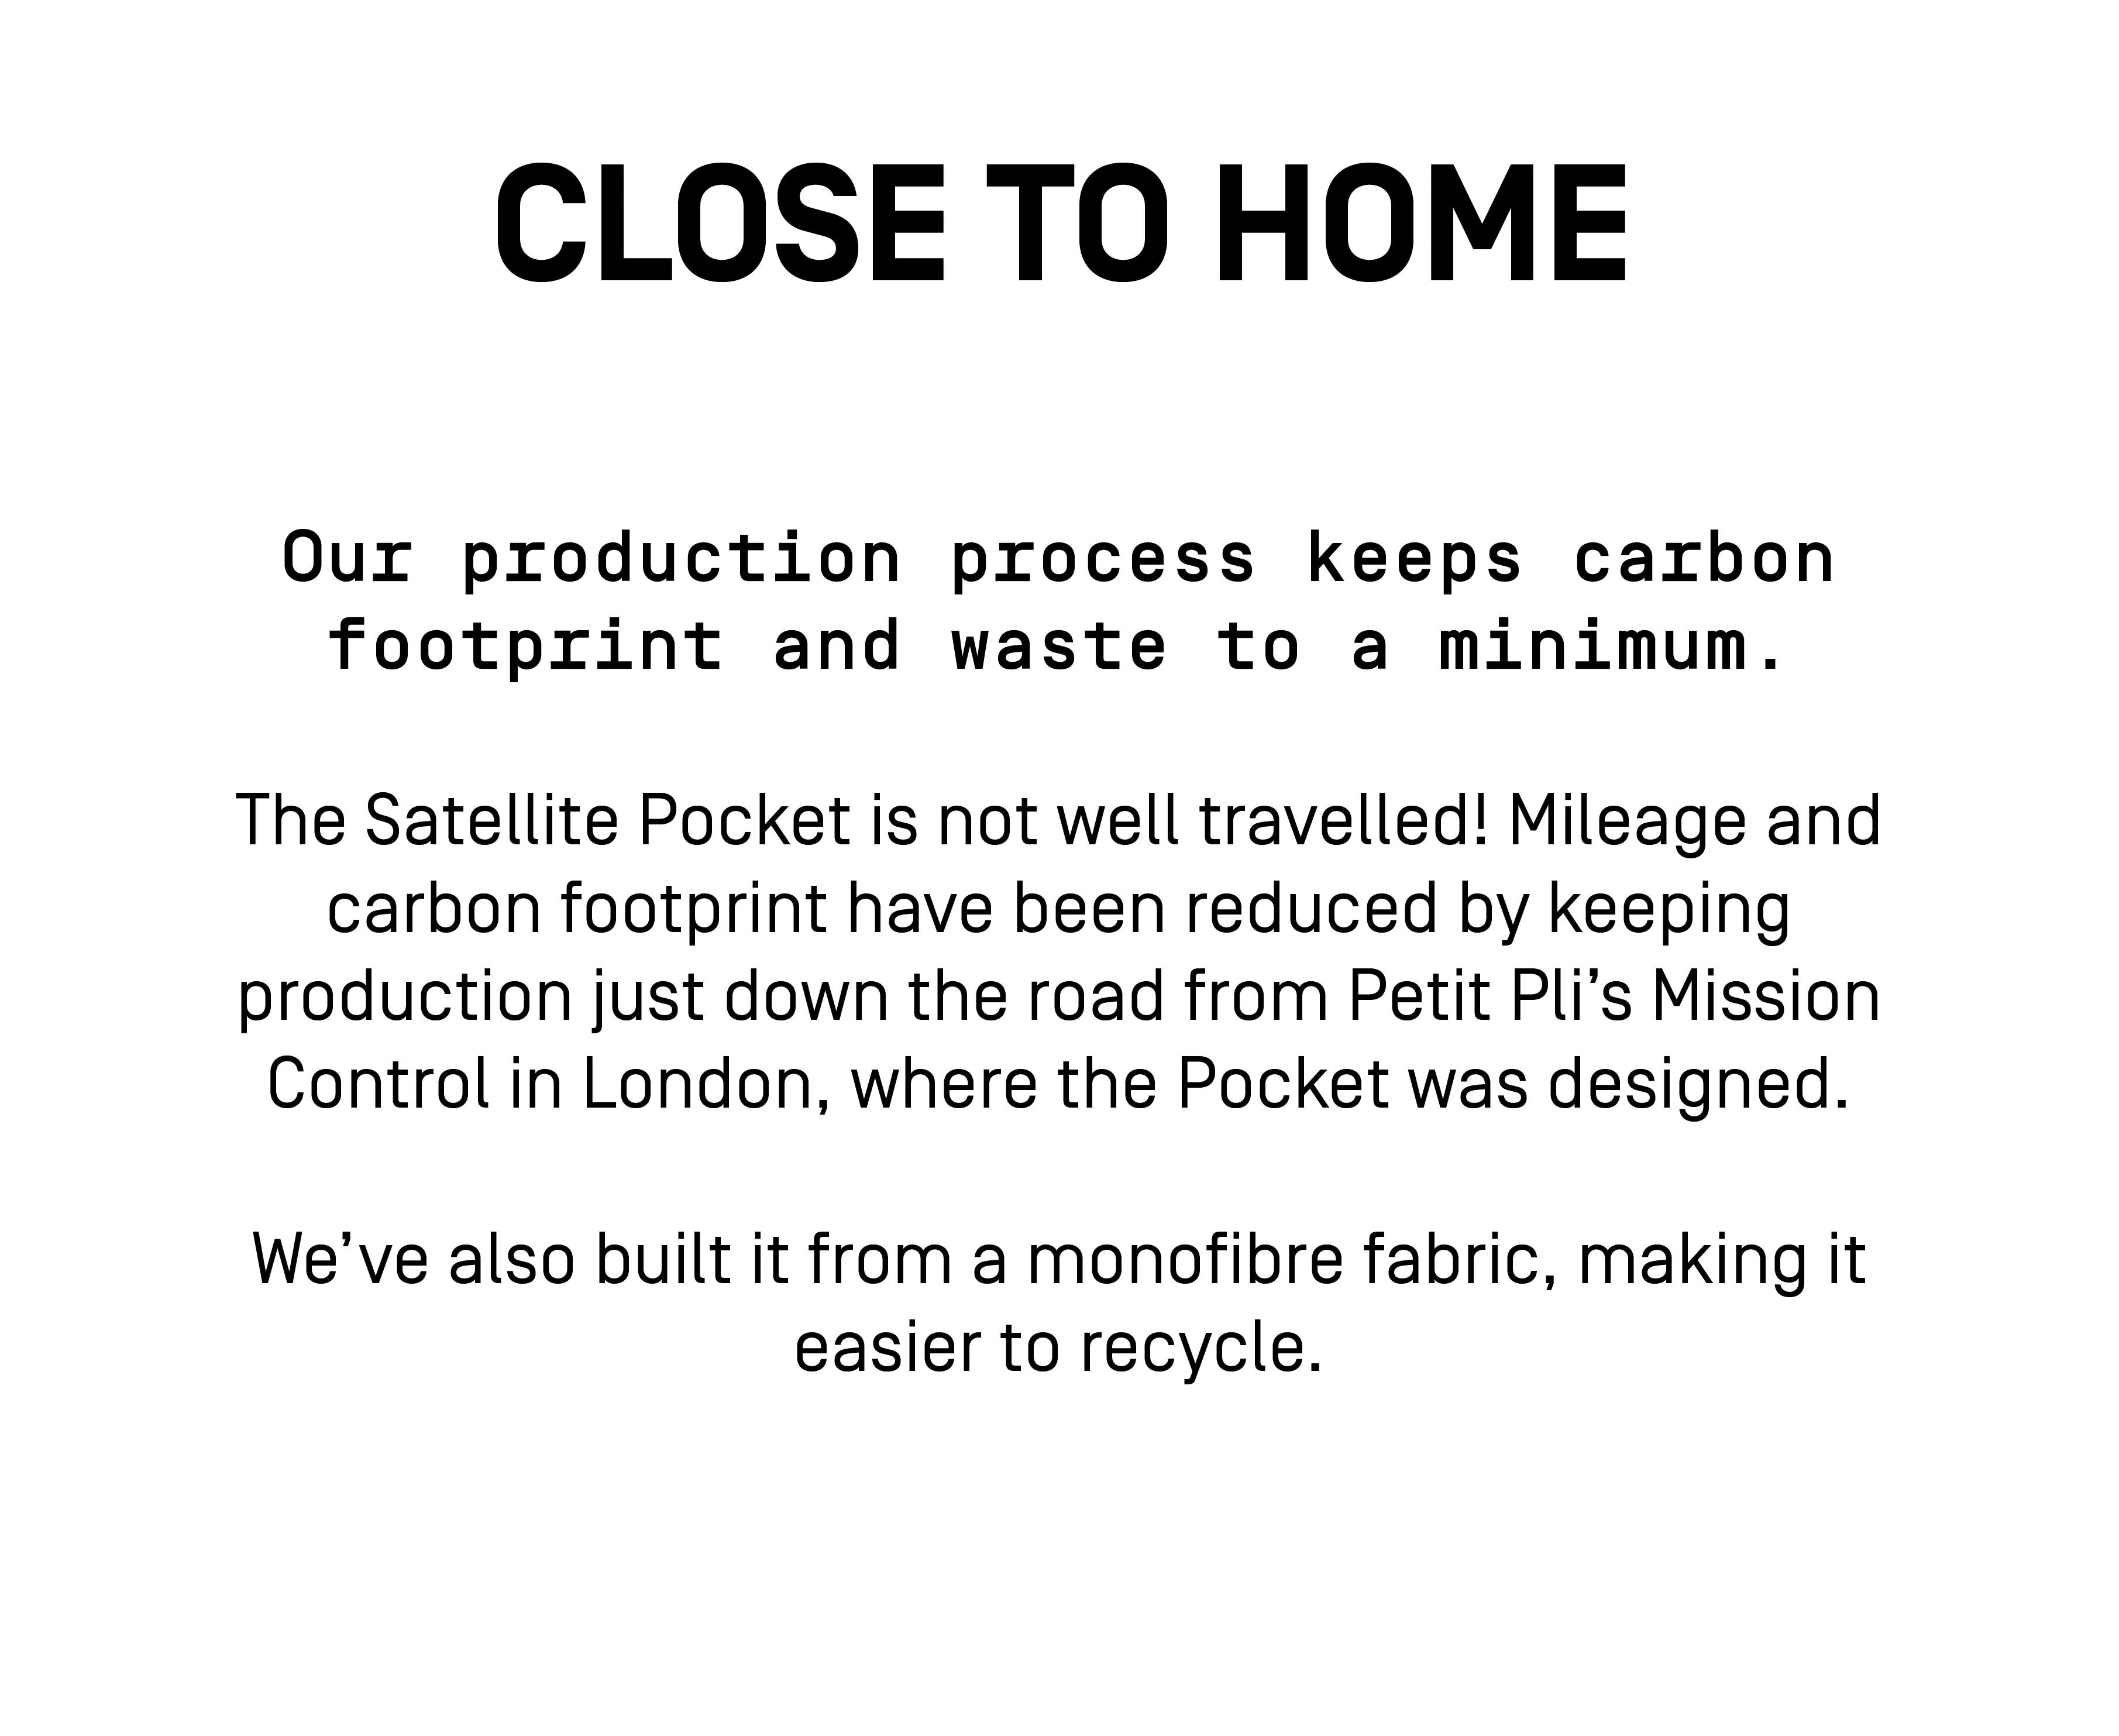 Our production process keeps carbon footprint and waste to a minimum.   The Satellite Pocket is not well travelled! Mileage and carbon footprint have been reduced by keeping production just down the road from Petit Pli's Mission Control in London, where the Pocket was designed.   We've also built it from a monofibre fabric, making it easier to recycle.